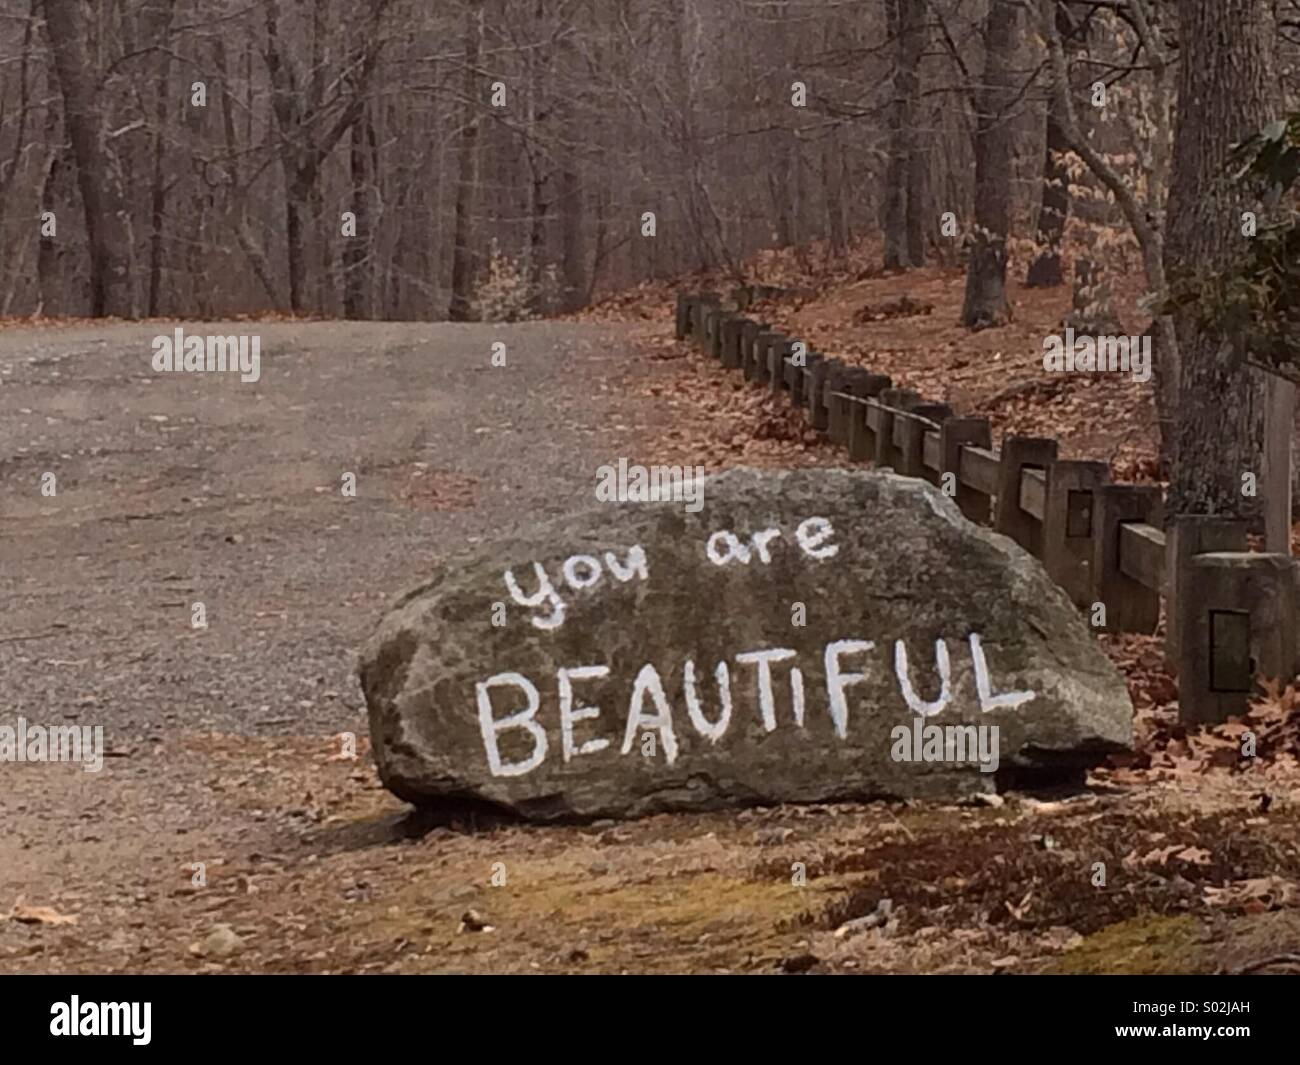 You are beautiful - Stock Image